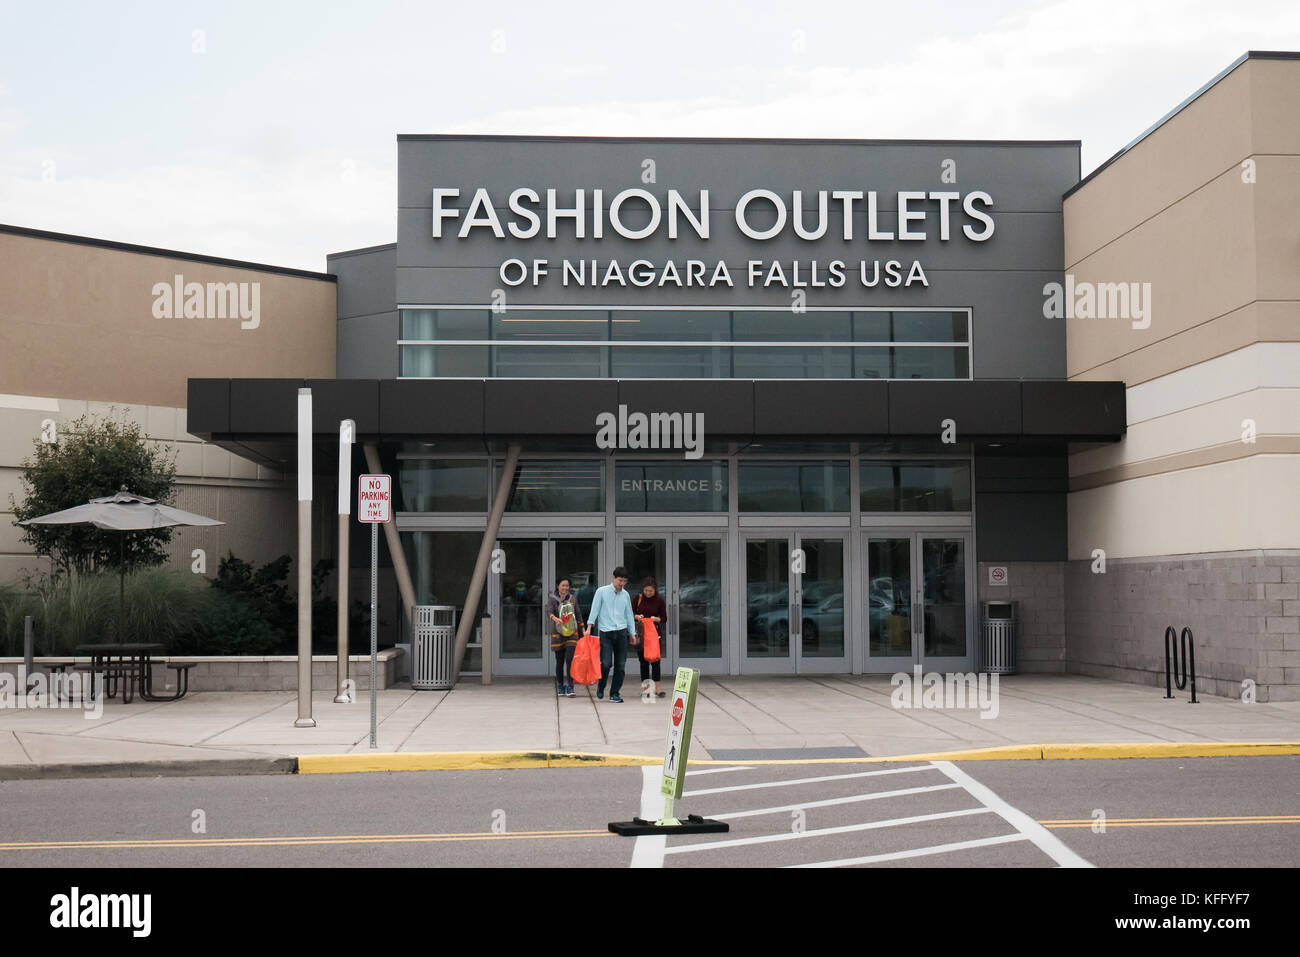 0d5b0c80 fashion outlets of niagara falls uSA Stock Photo: 164464027 - Alamy